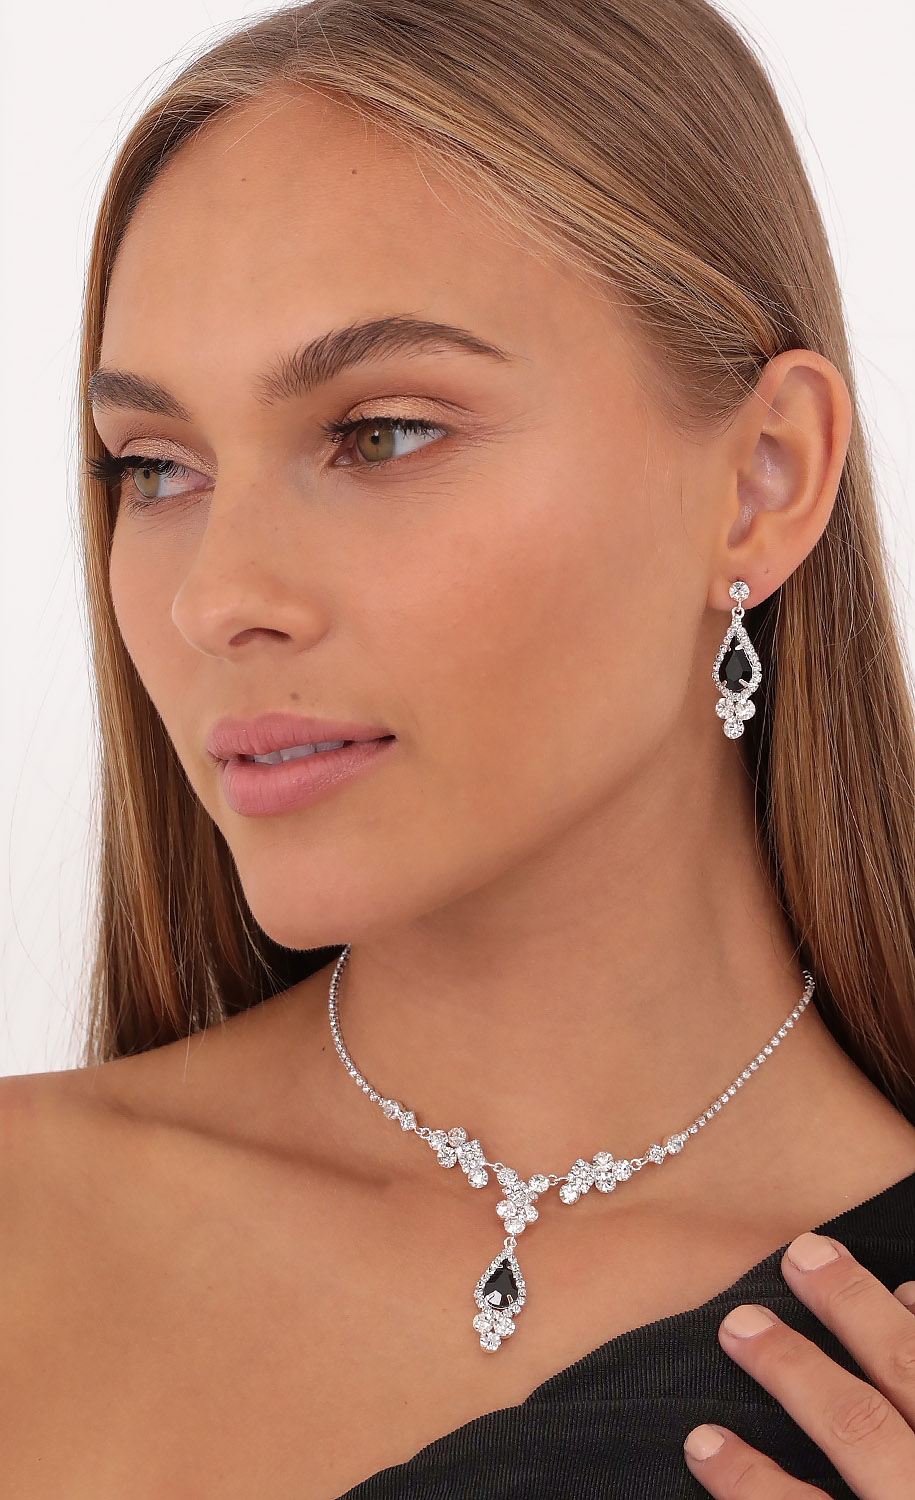 Take Me To The Ball Crystal Necklace Set